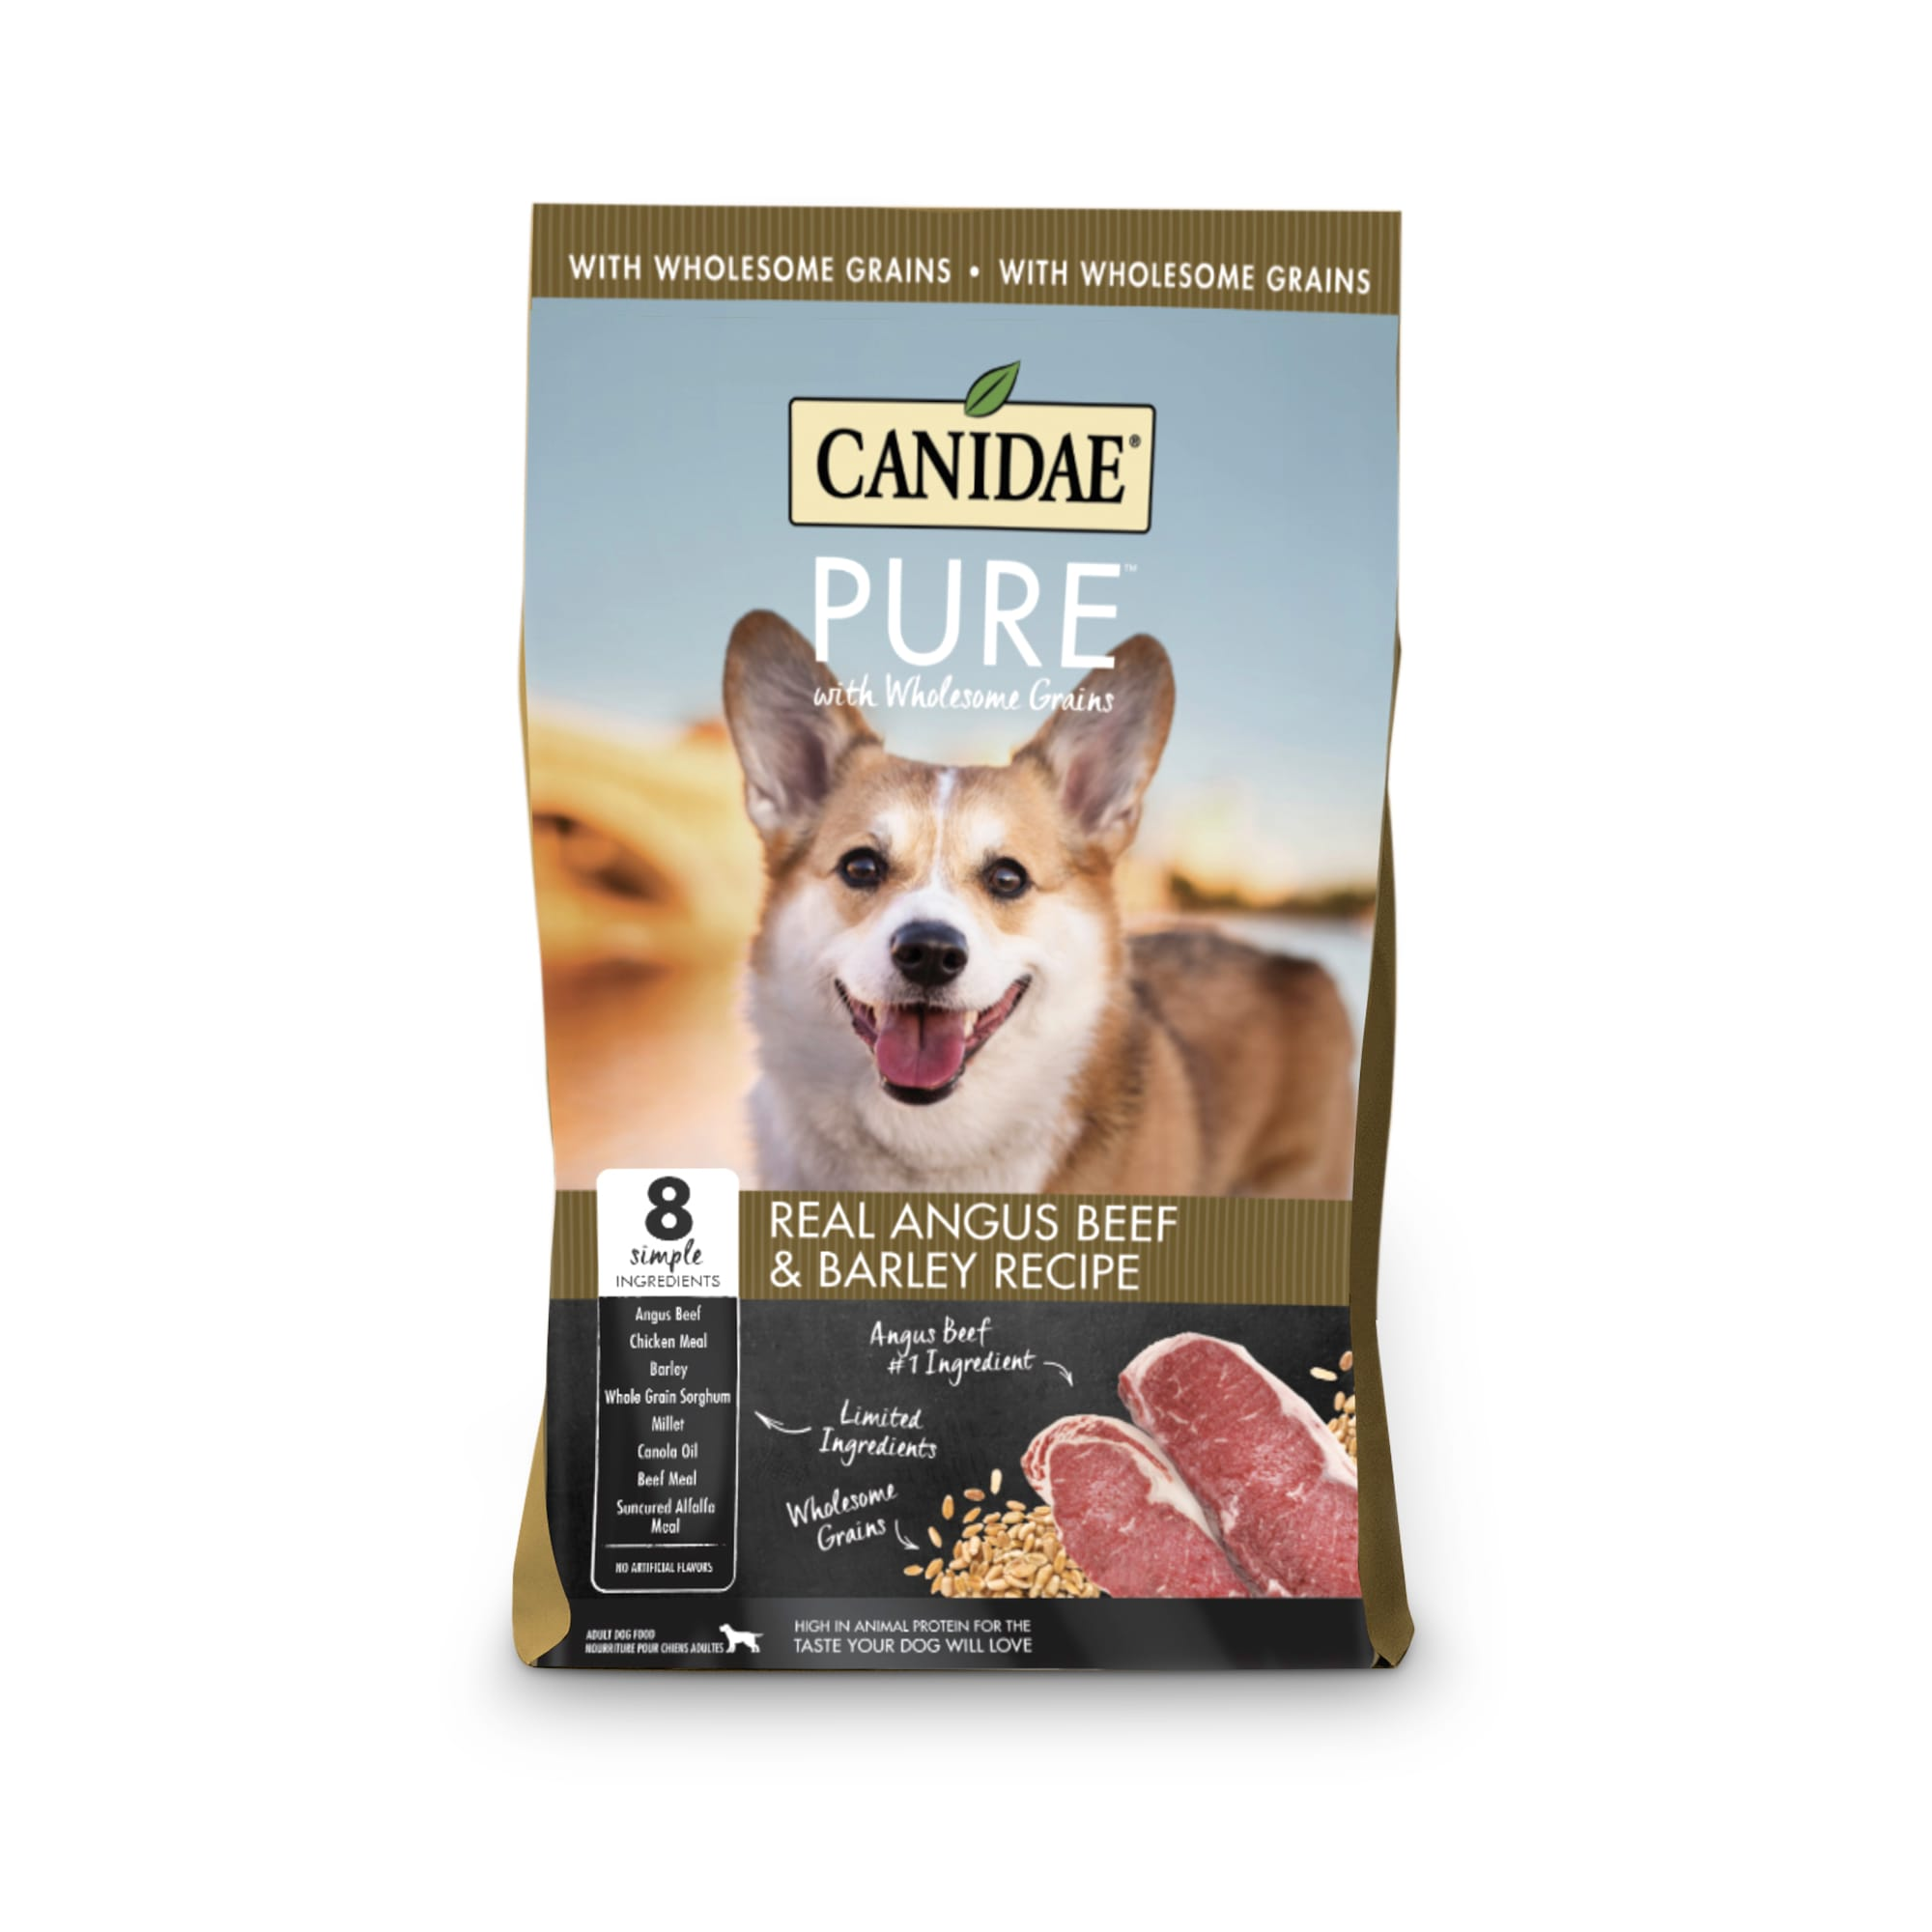 Canidae PURE Wholesome Grains Limited Ingredient Real Angus Beef and Barley Recipe Dry Dog Food